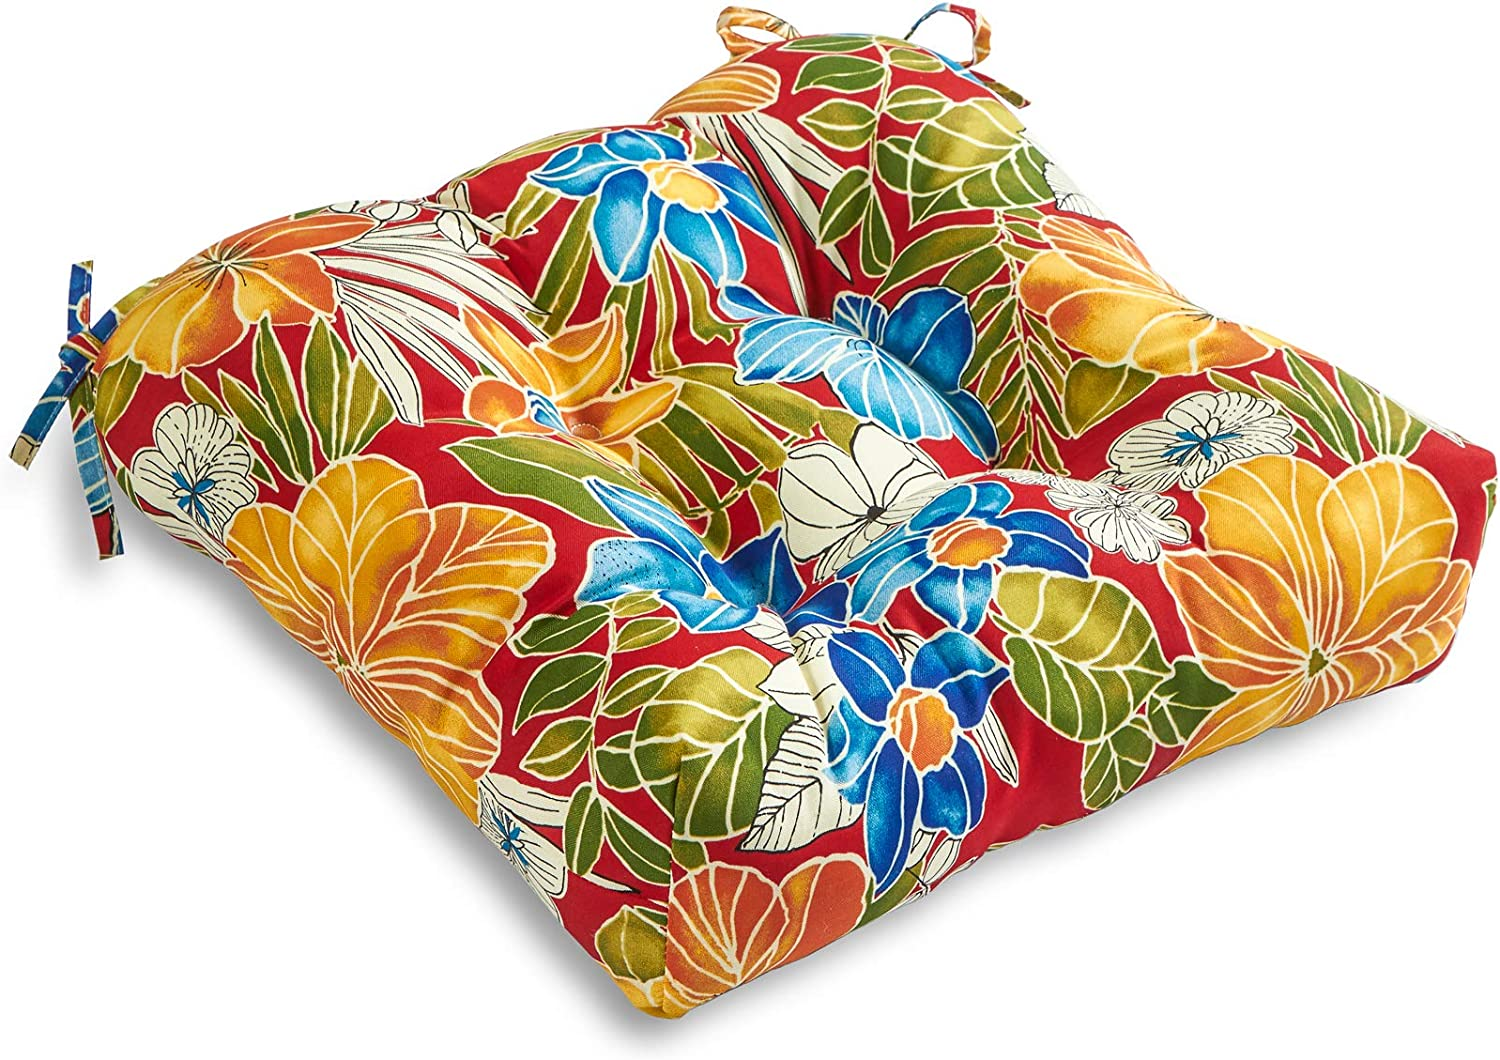 South Pine Porch Outdoor Aloha Save money Red Seat Max 43% OFF 20-inch Cushion Floral